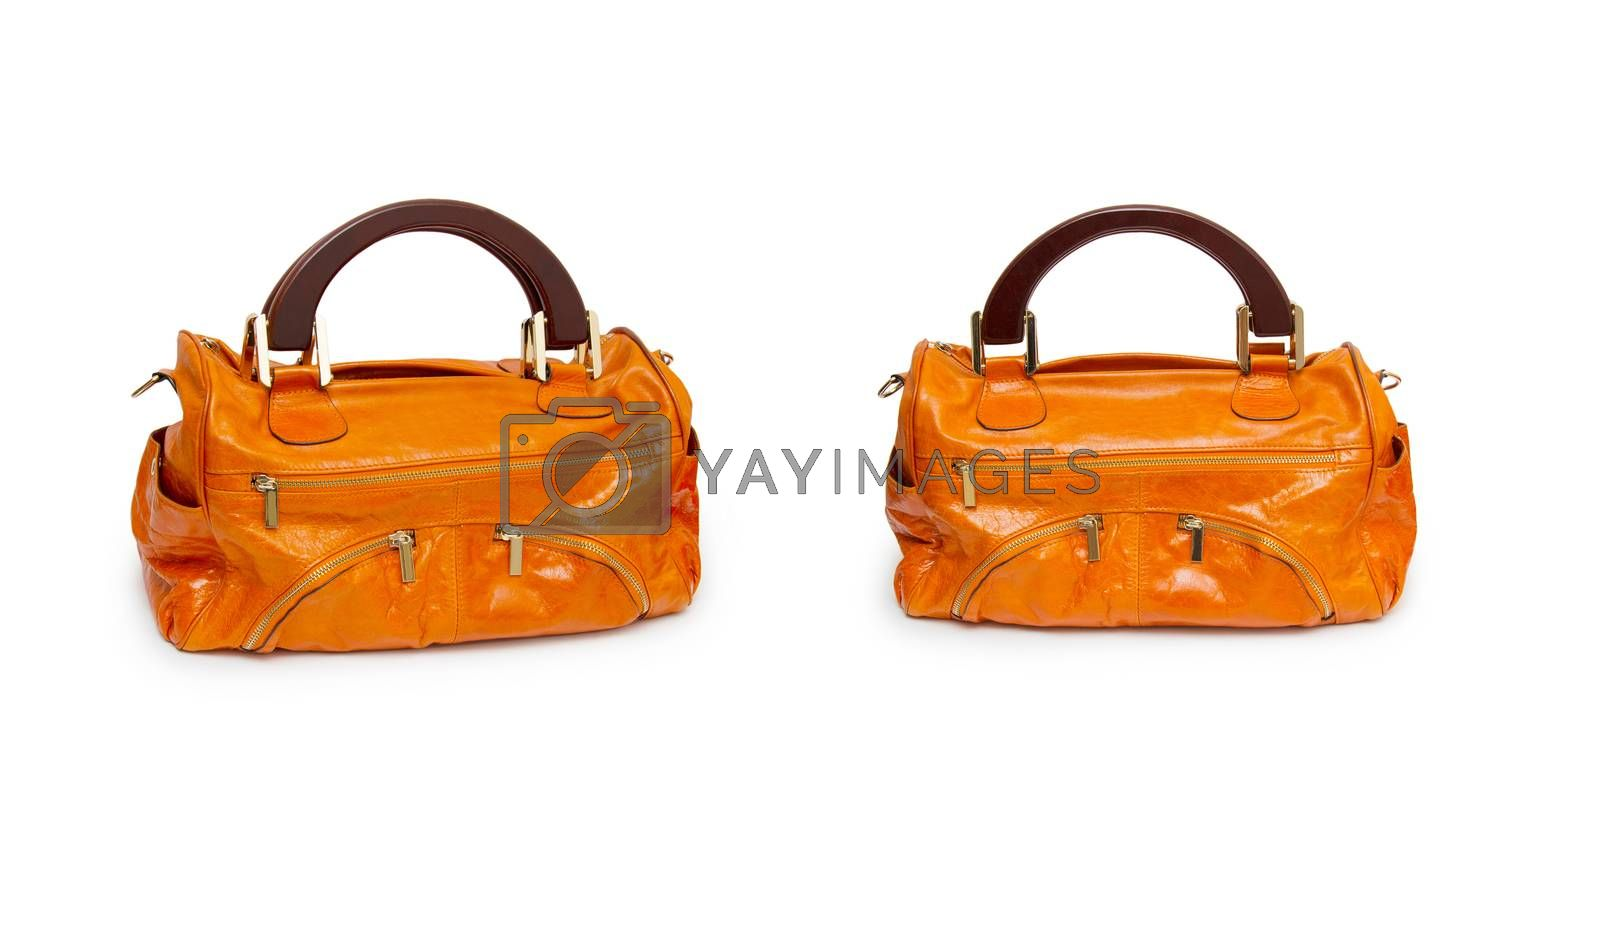 Royalty free image of Woman bag isolated on the white background by cocoo